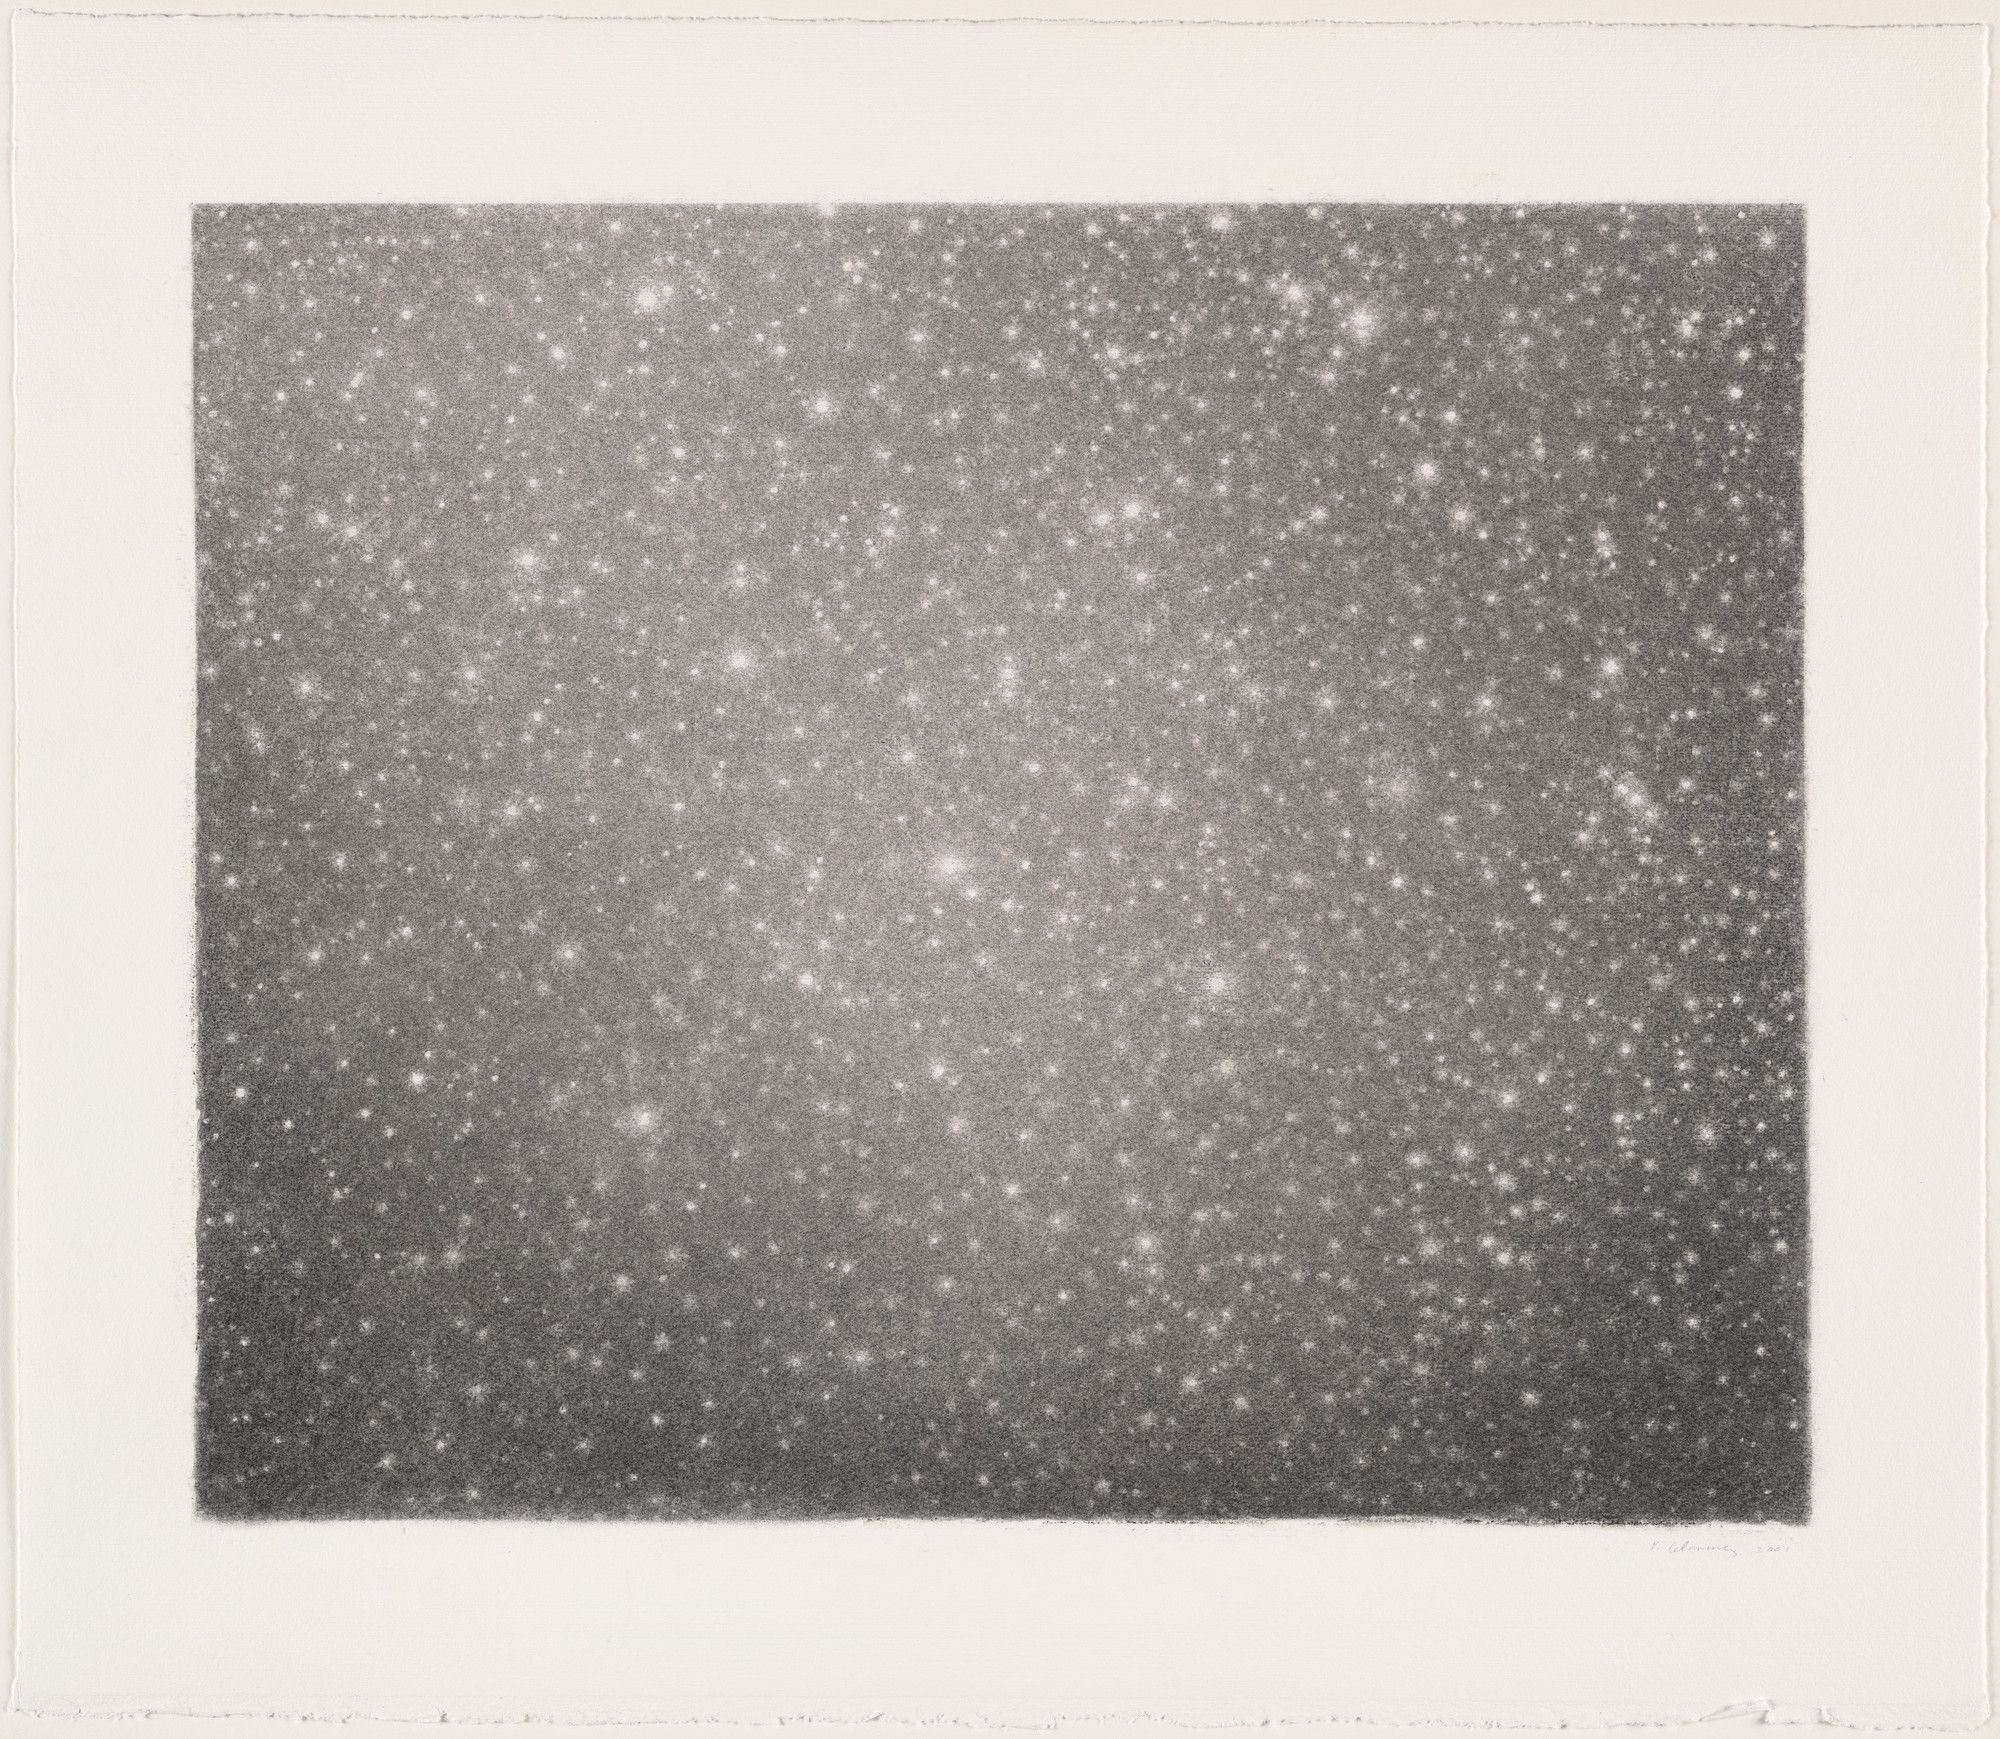 Vija Celmins. Untitled (Night Sky #22). 2001